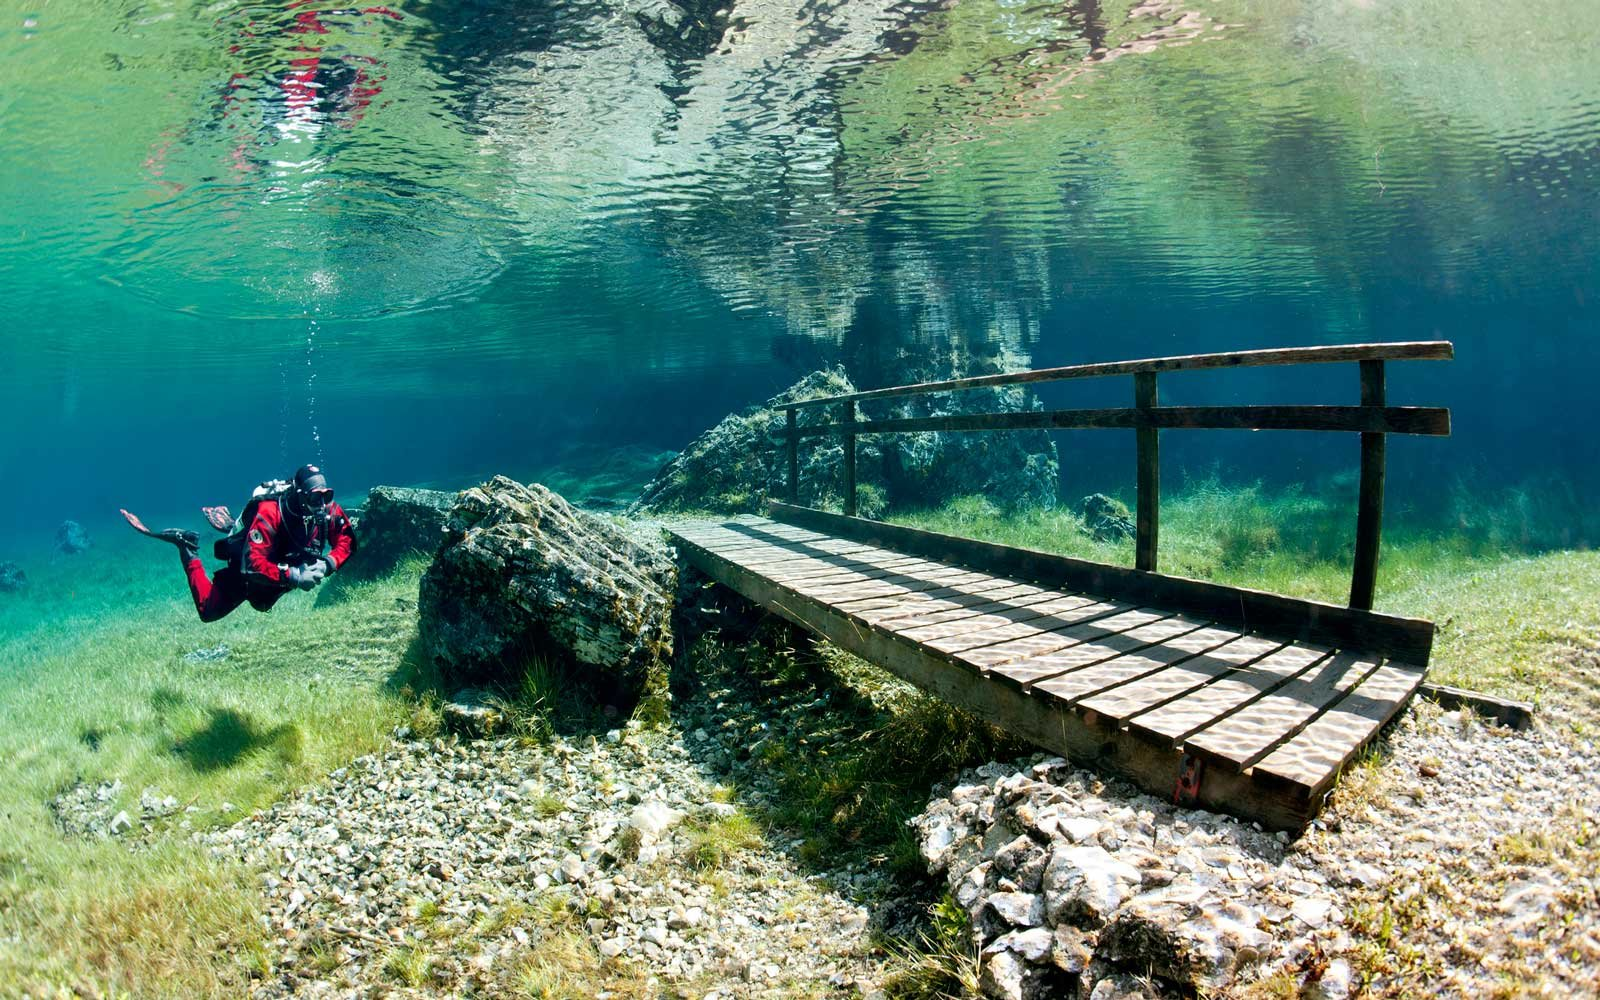 Austria's Magical Green Lake 'Disappears' in the Winter ...